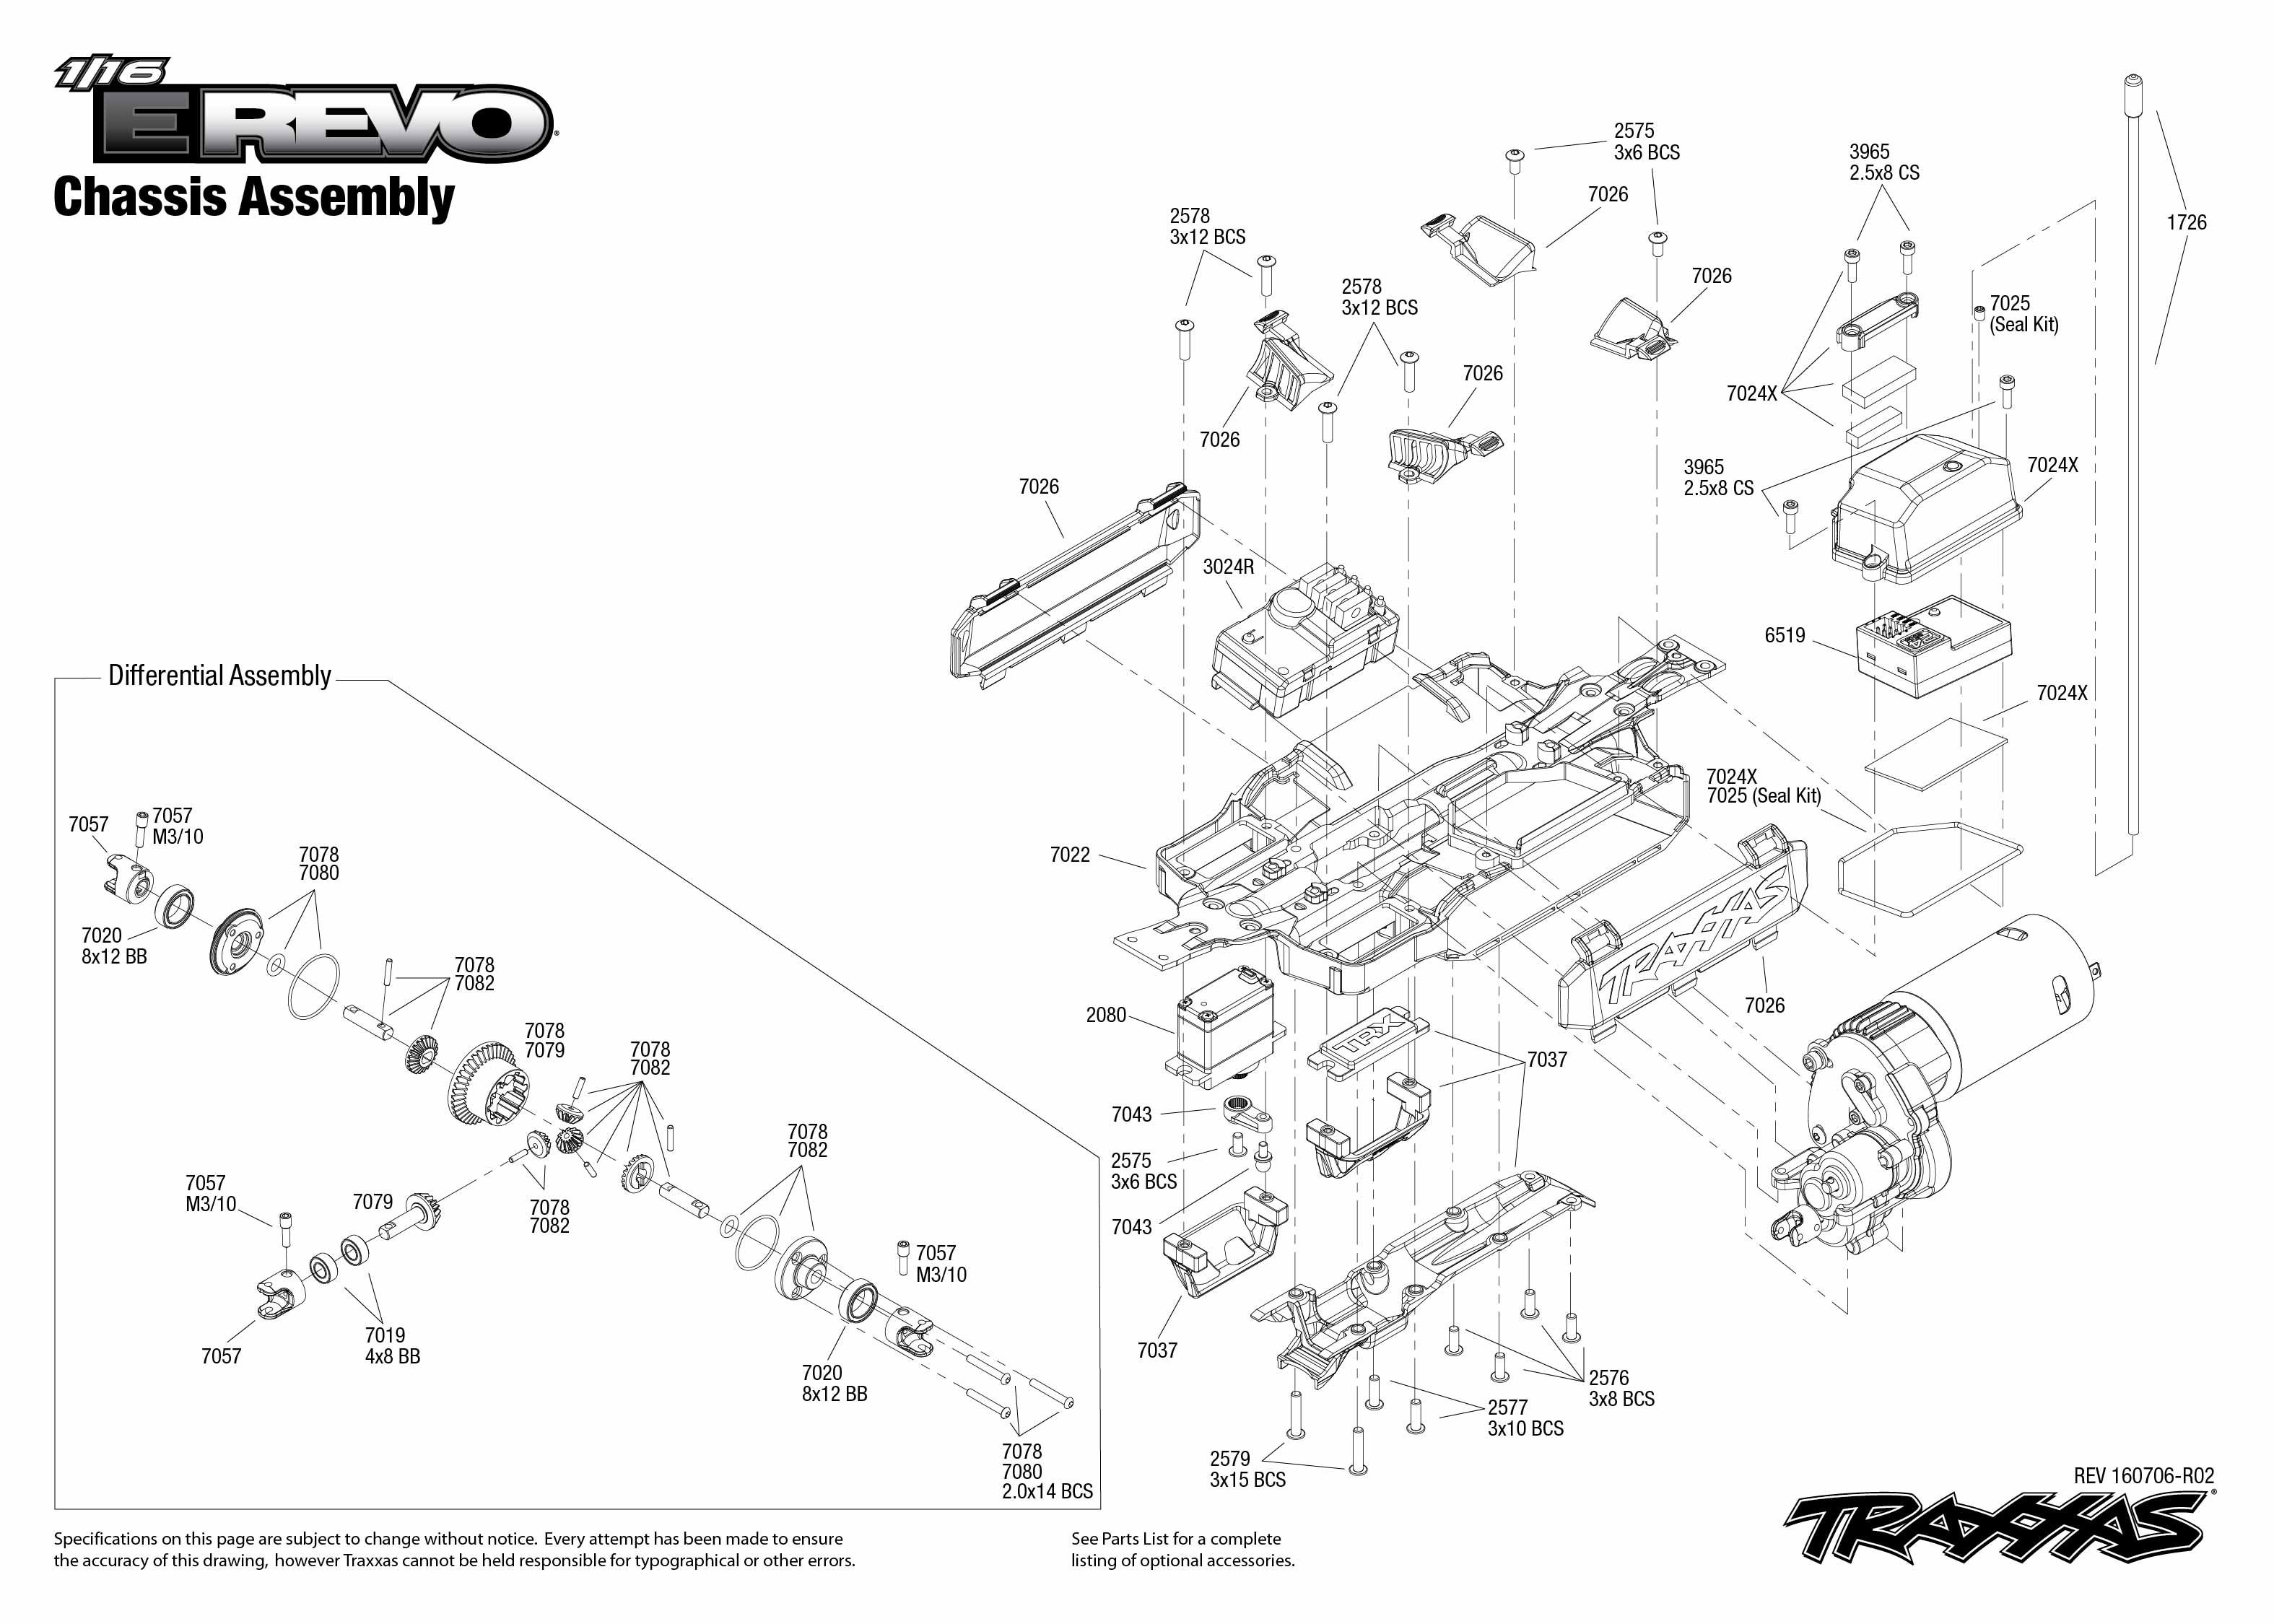 1 16 e revo 71054 1 chassis assembly exploded view. Black Bedroom Furniture Sets. Home Design Ideas